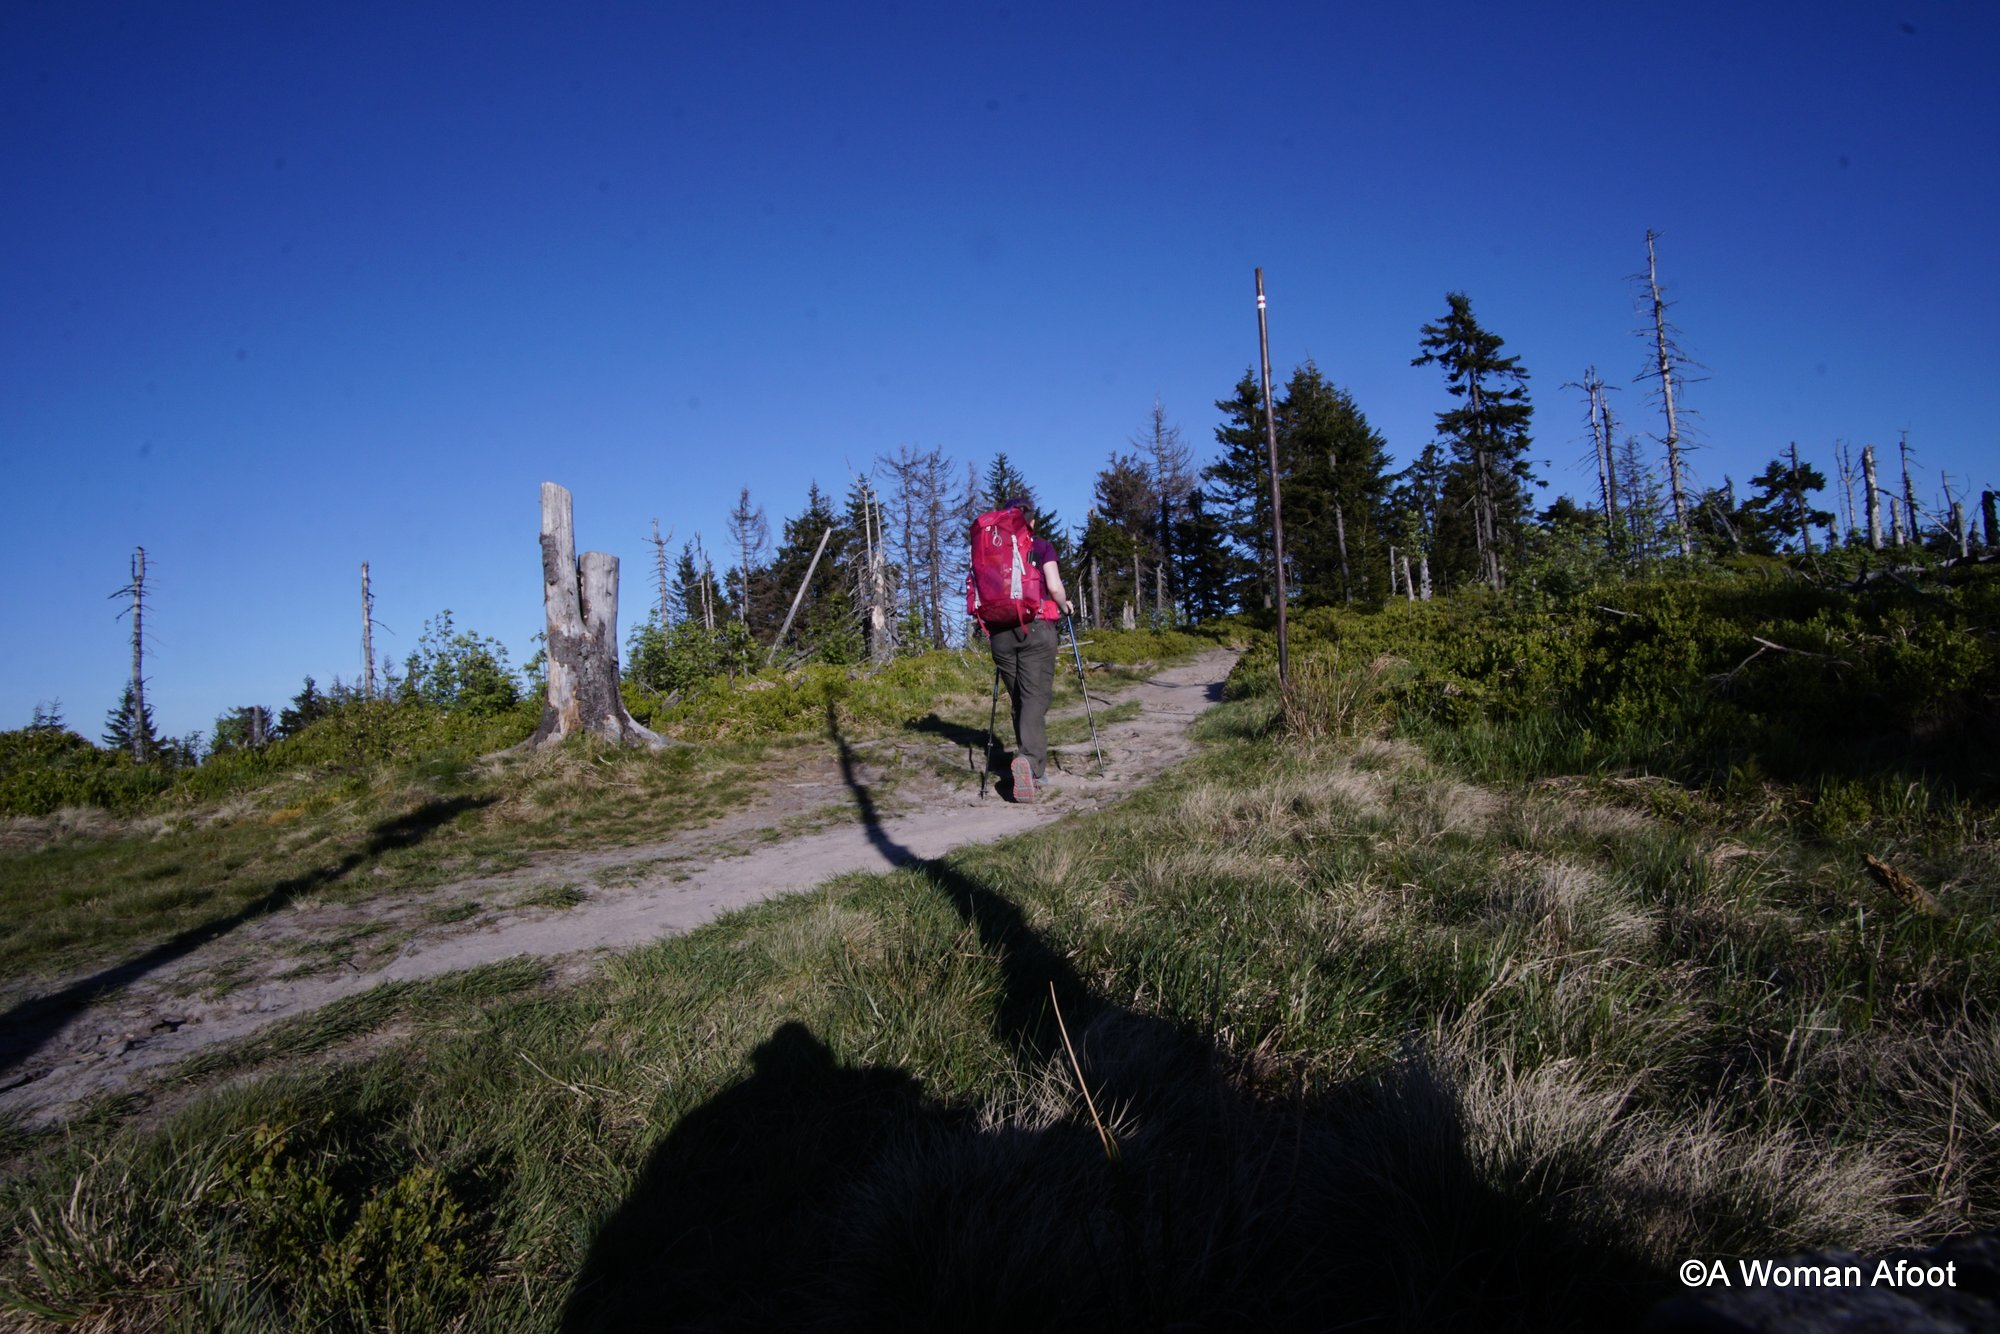 Check out this in-depth review of Gregory Maven 45 backpack for women! Perfect for overnight hikes and week-long treks. Learn more @ AWOMANAFOOT.COM. | Gear Reviews | Backpacks for Women | Hiking Gear for Women | Rucksacks for Hiking Women | What backpack to take for a hike | #Hiking #Backpacking #Backpack #GregoryBackpack #GearReview #Reviews #FemaleHikers #HikingWomen |